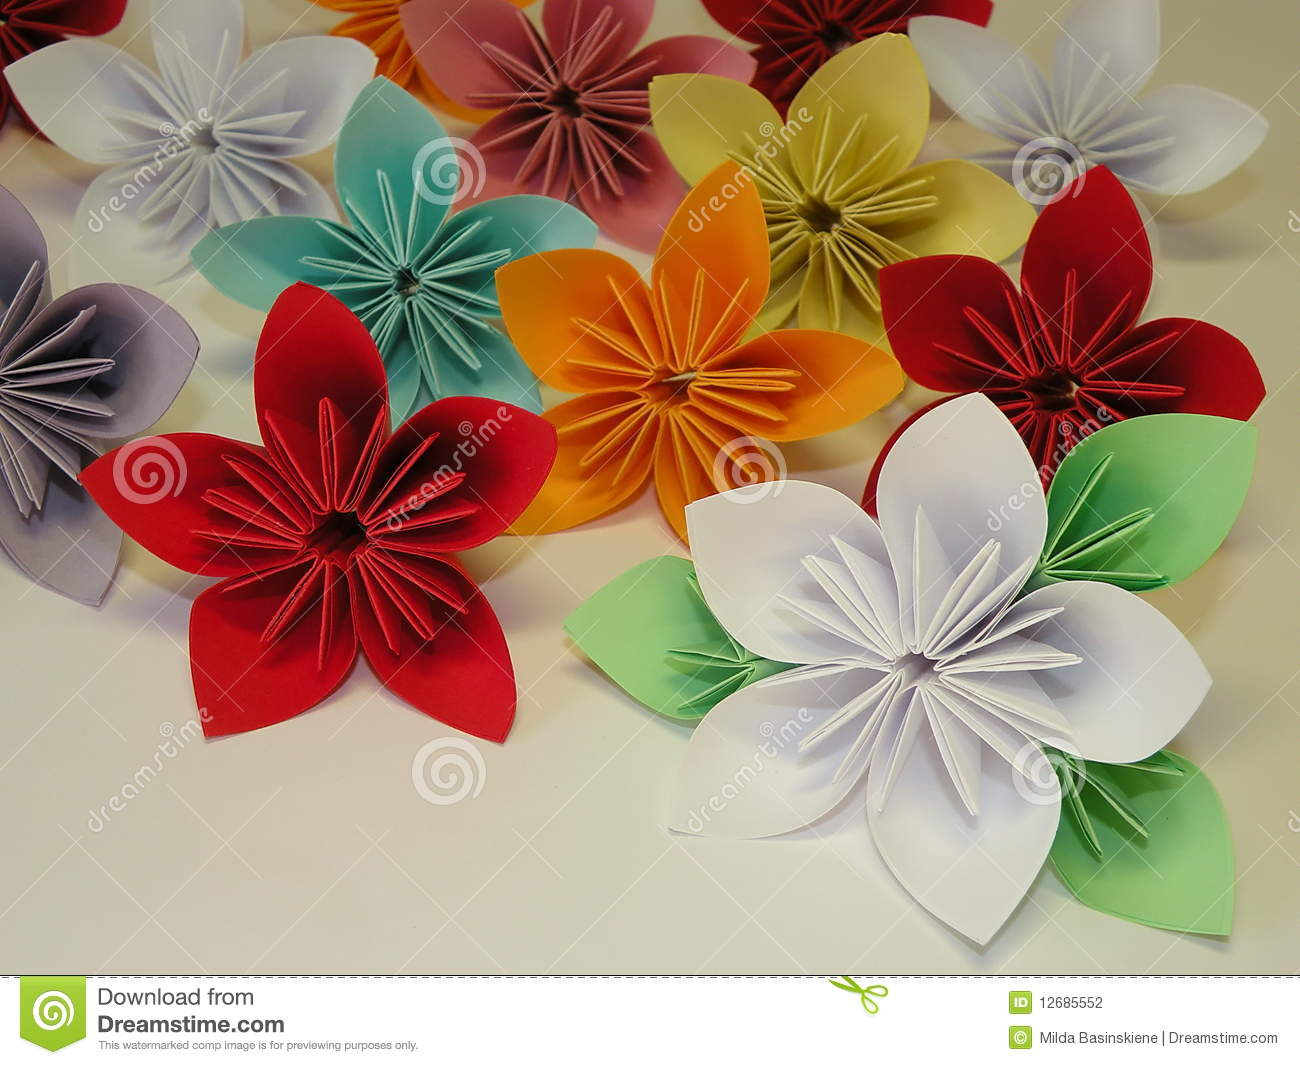 Origami flowers stock photo image of made card craftsmanship download origami flowers stock photo image of made card craftsmanship 12685552 izmirmasajfo